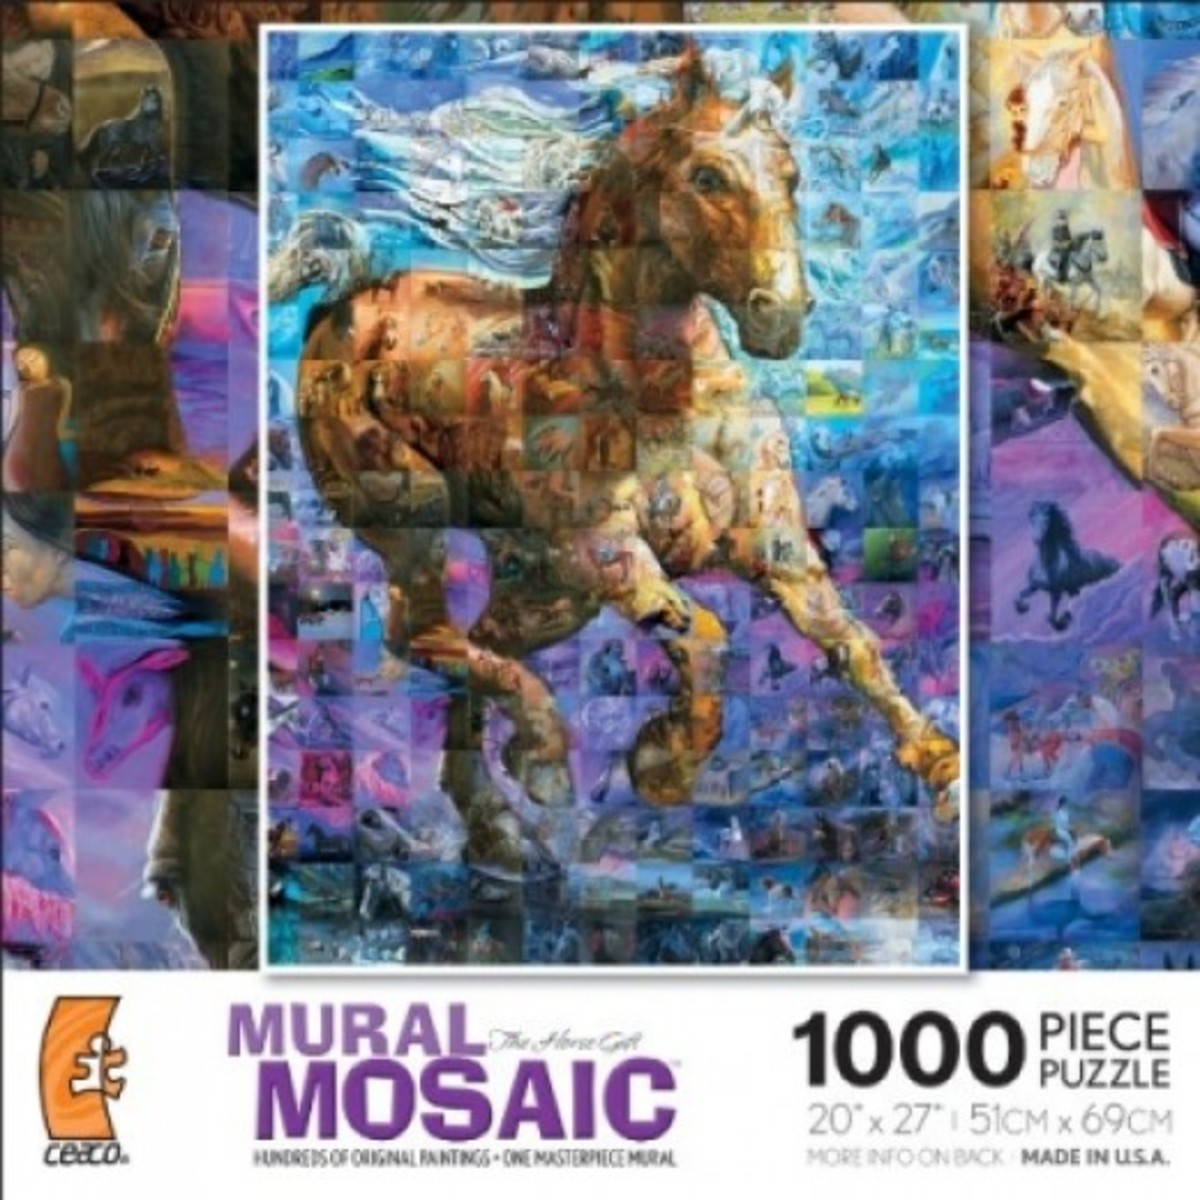 The Mural has now been produced into a puzzle and worth spotlighting because it's beautiful, unusual, fun and challenging.  And I can say, I'm glad I was part of this Mosaic Mural.